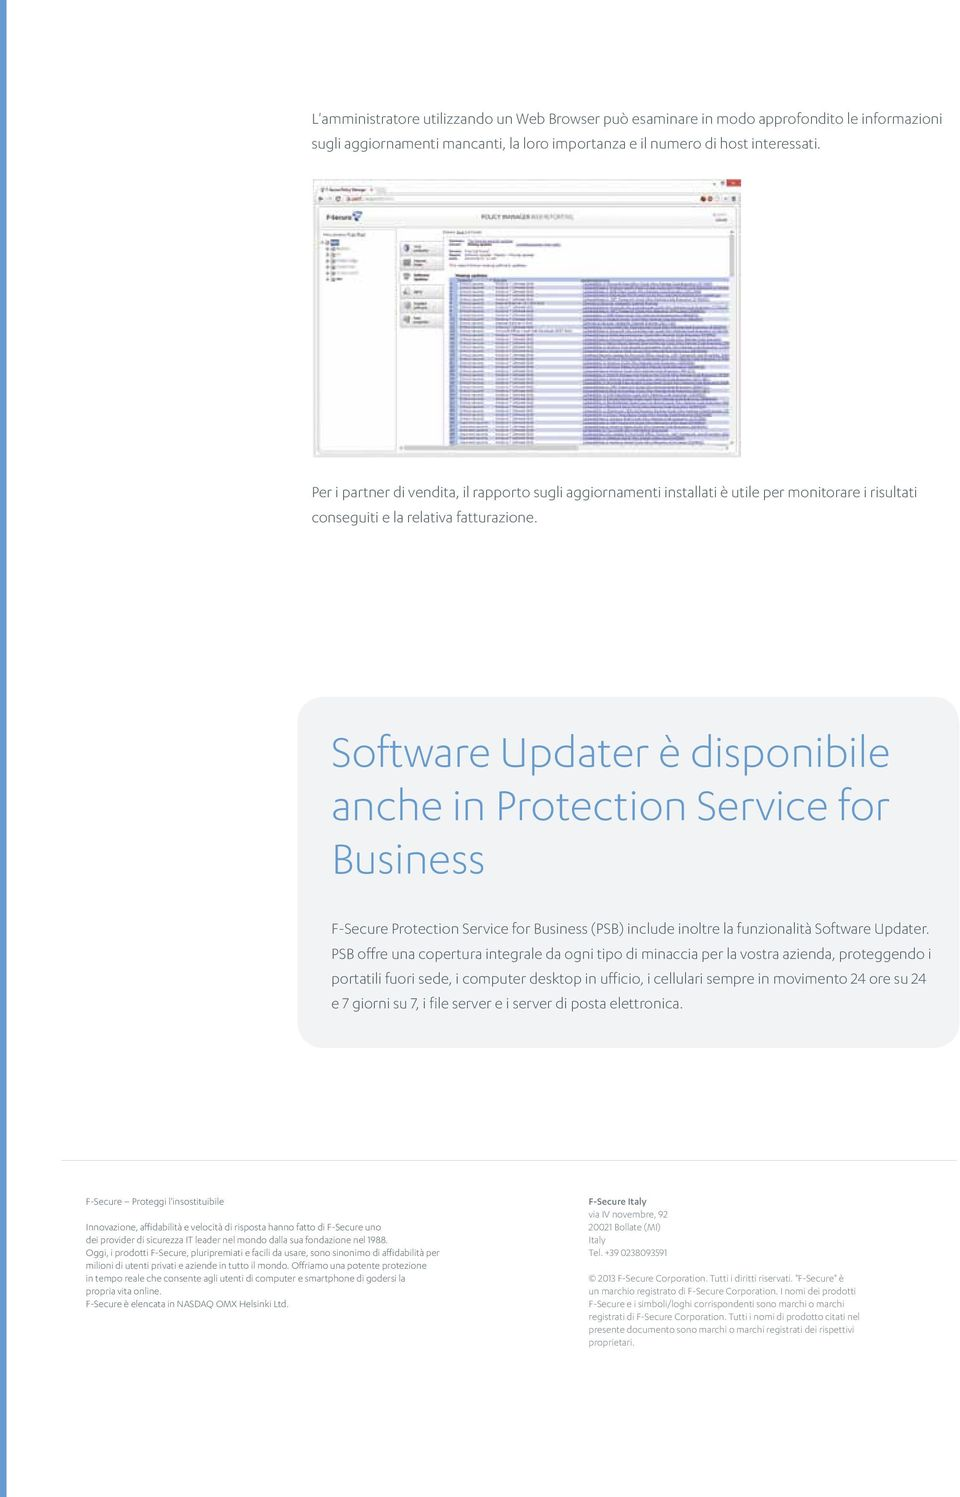 Software Updater è disponibile anche in Protection Service for Business F-Secure Protection Service for Business (PSB) include inoltre la funzionalità Software Updater.